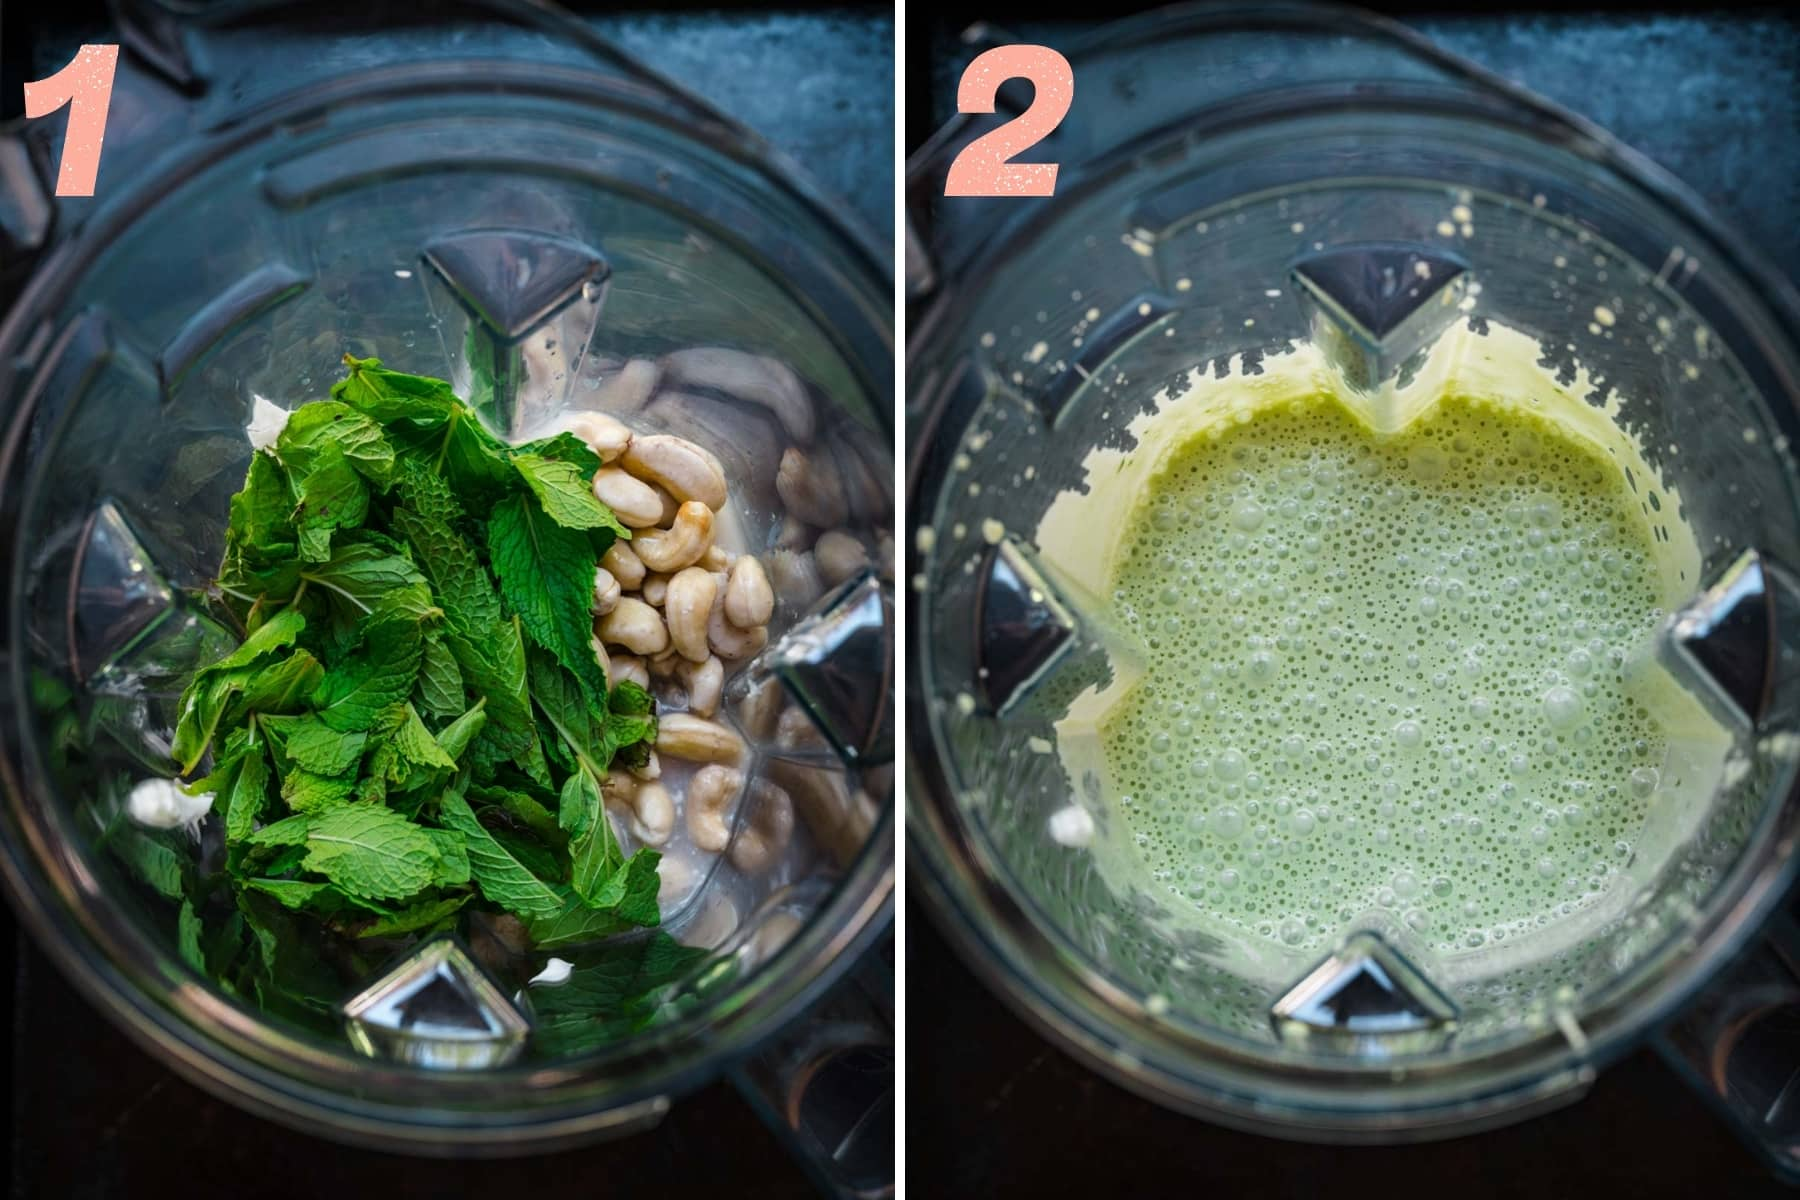 before and after blending ingredients for vegan mint chocolate chip ice cream in blender.